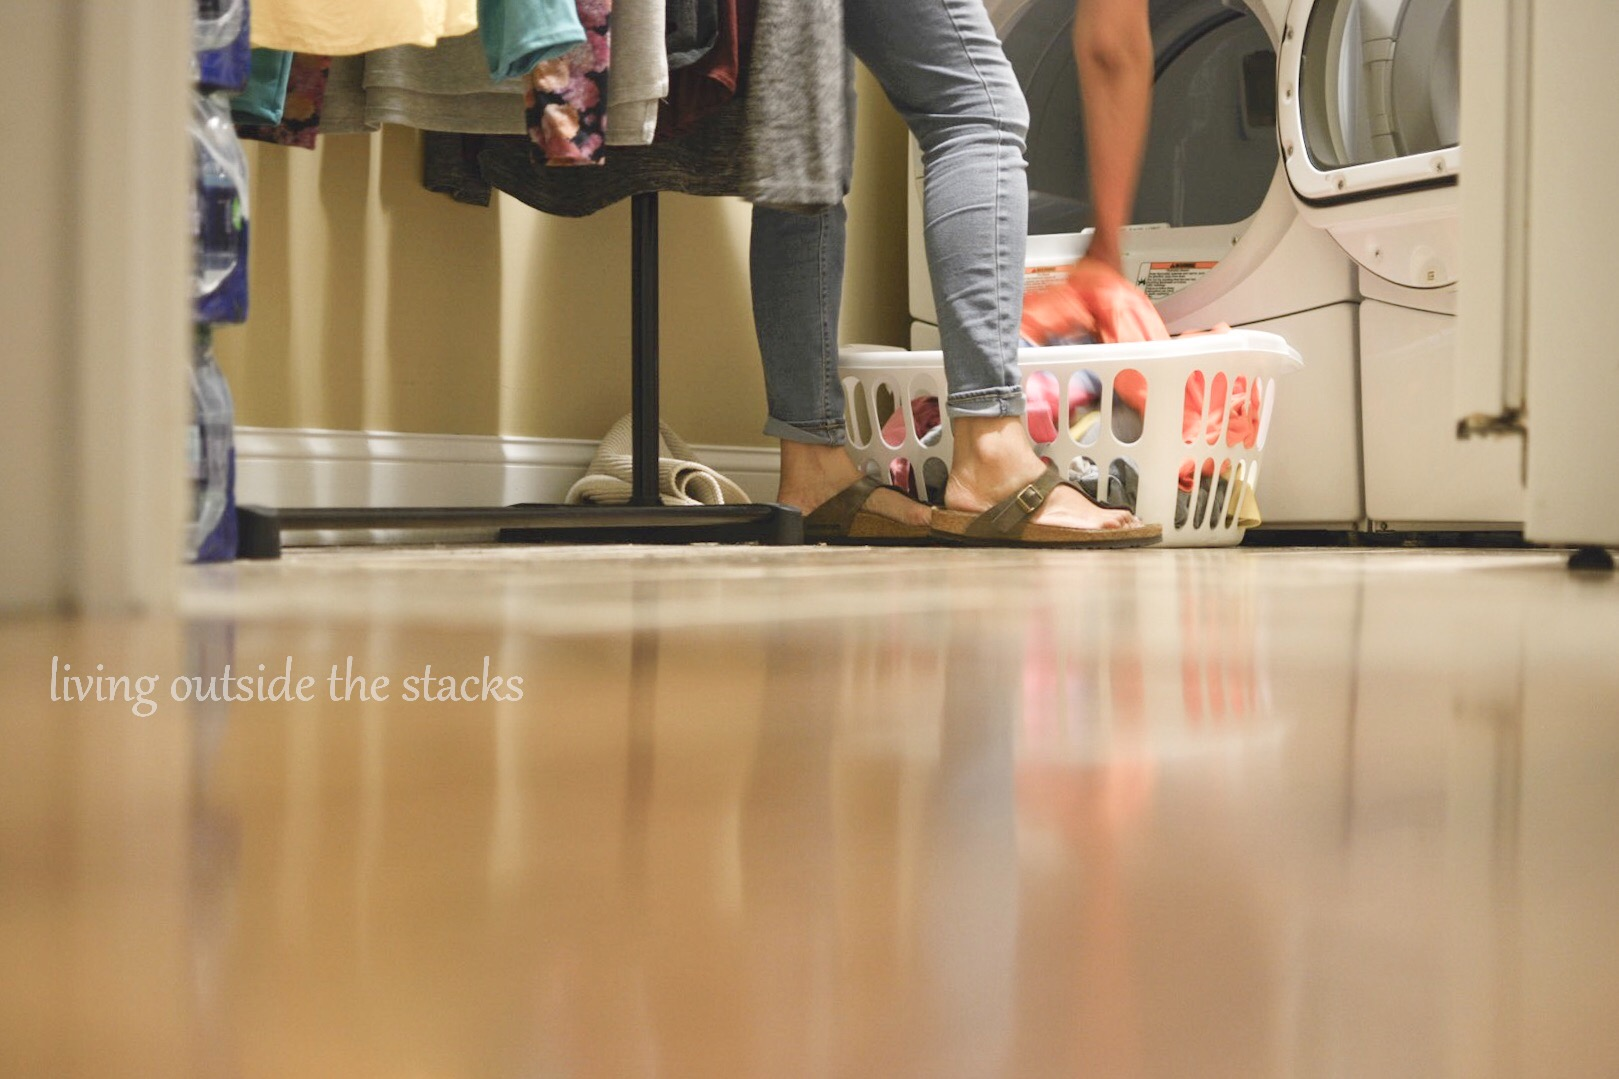 Laundry Duty {living outside the stacks}